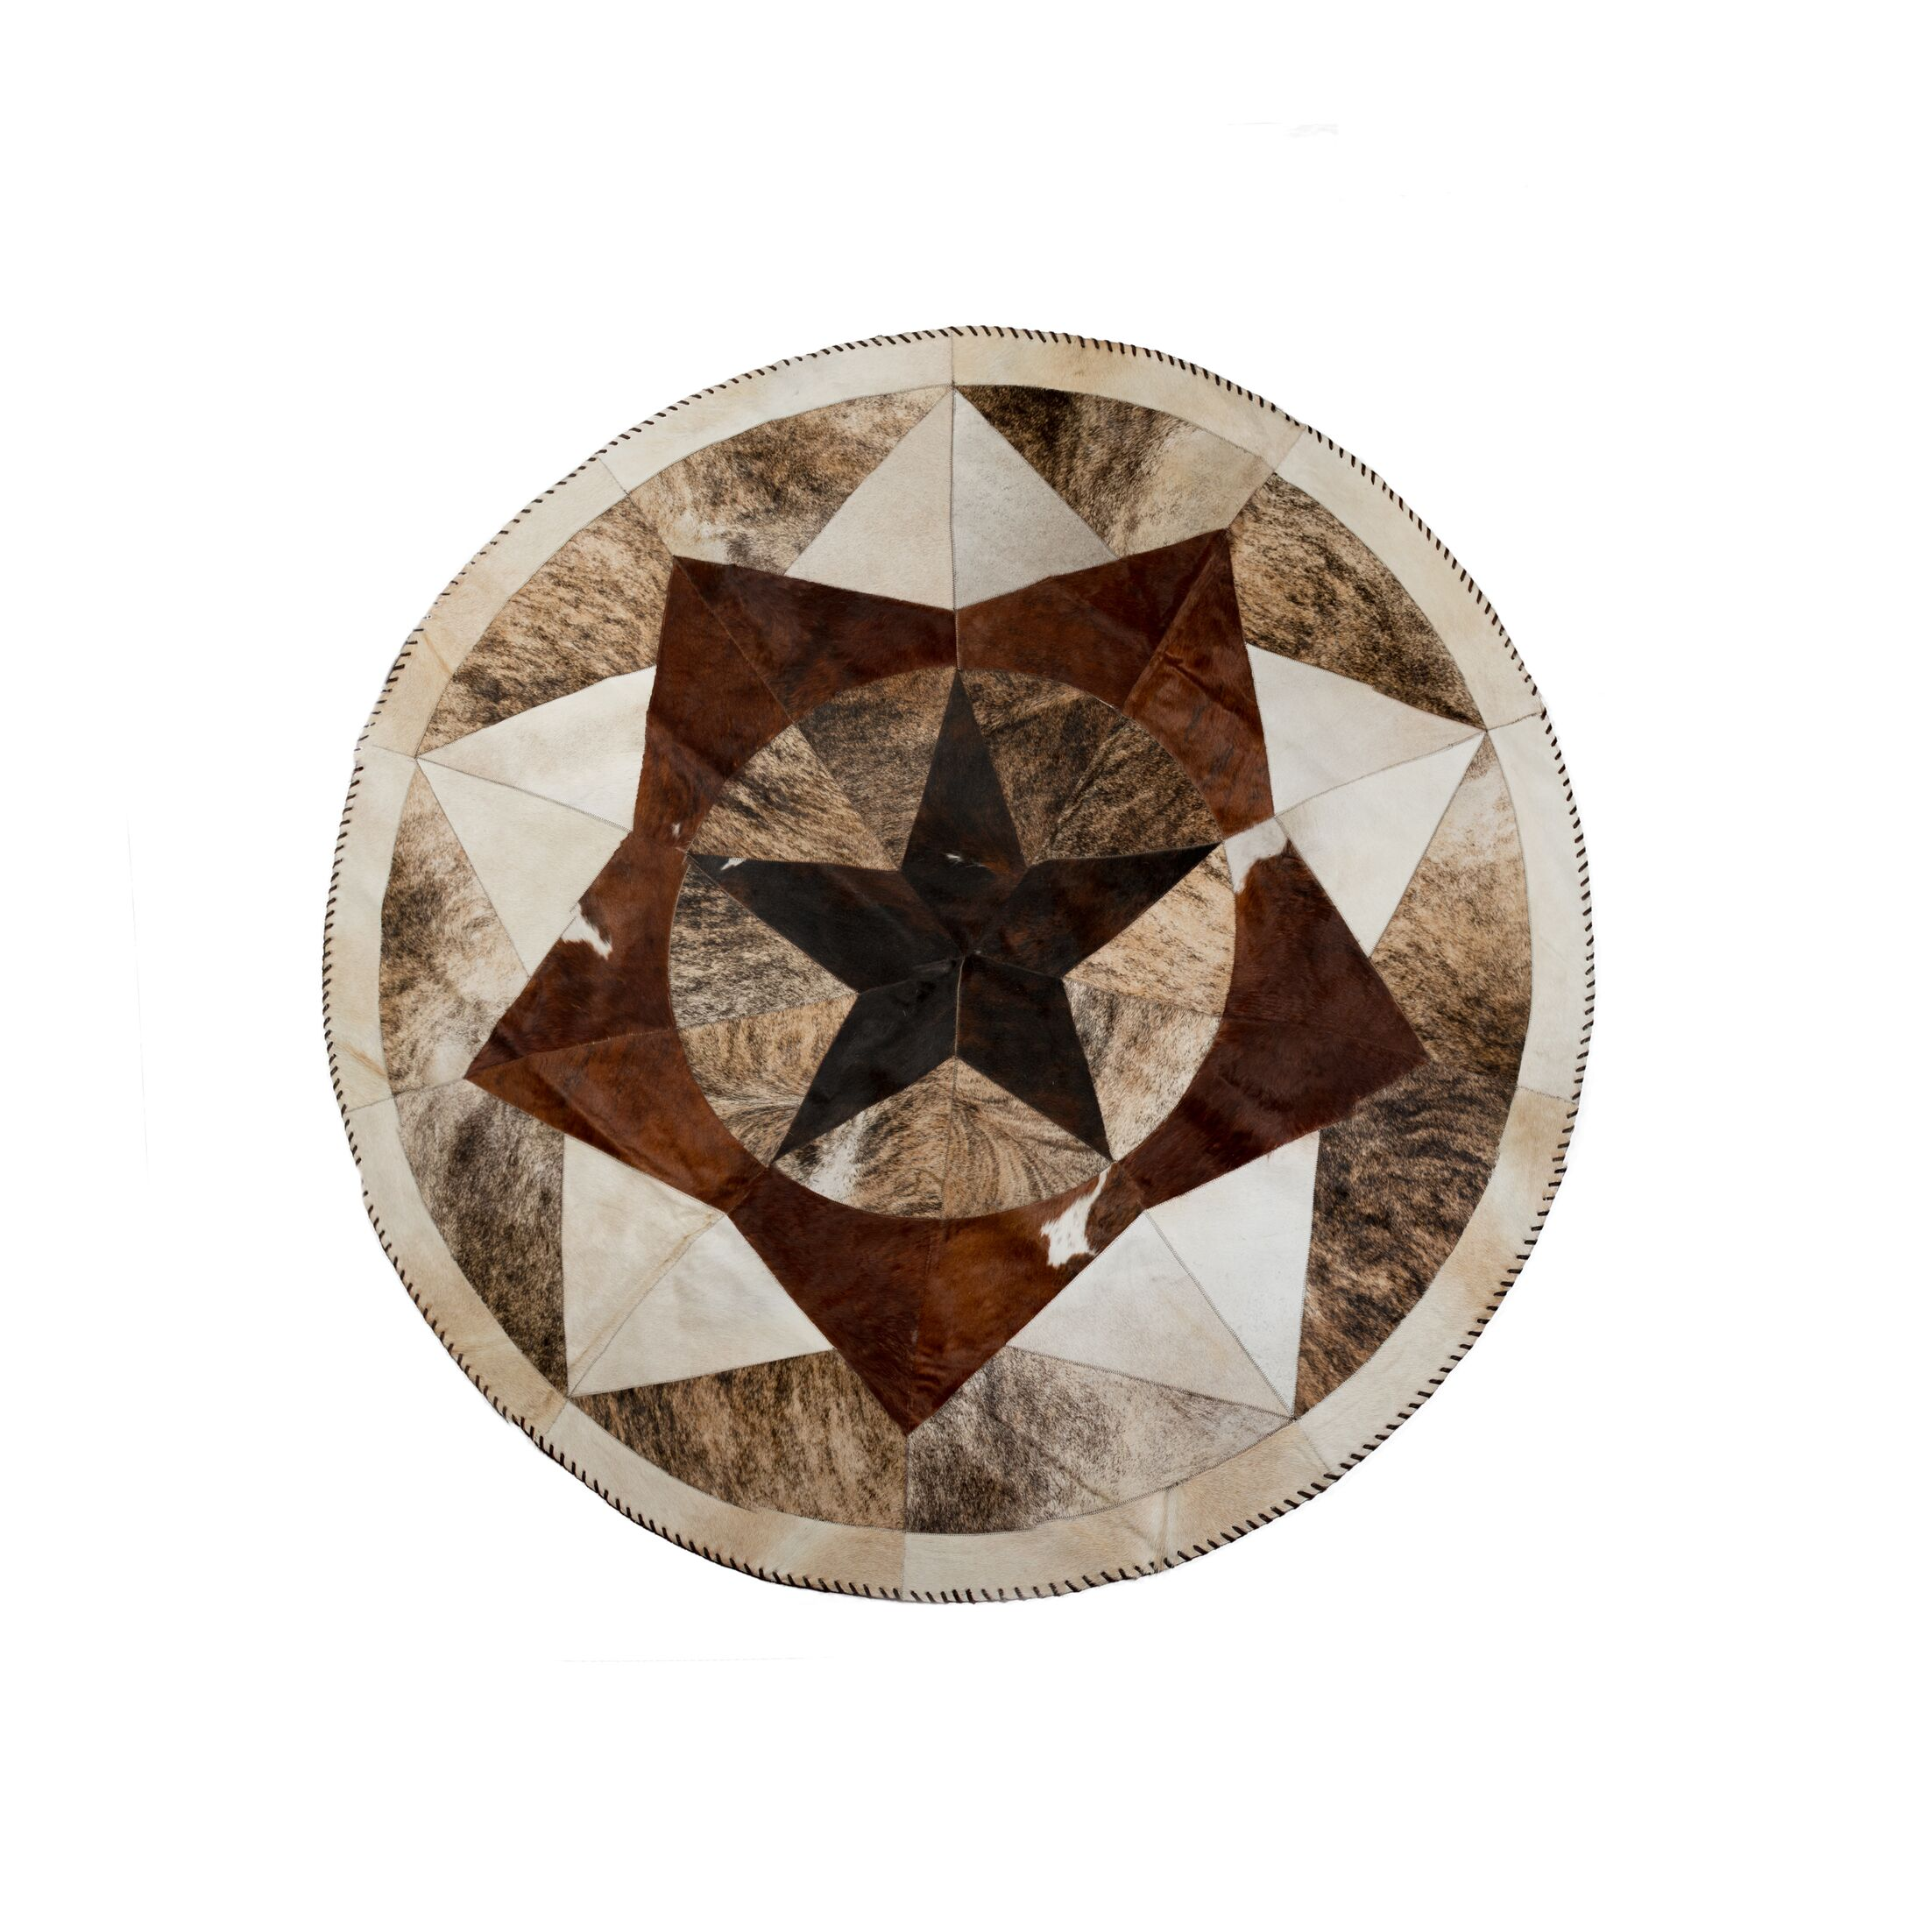 Griffith Stitch Hand-Woven Cowhide Brown/Black Area Rug Rug Size: Round 7'